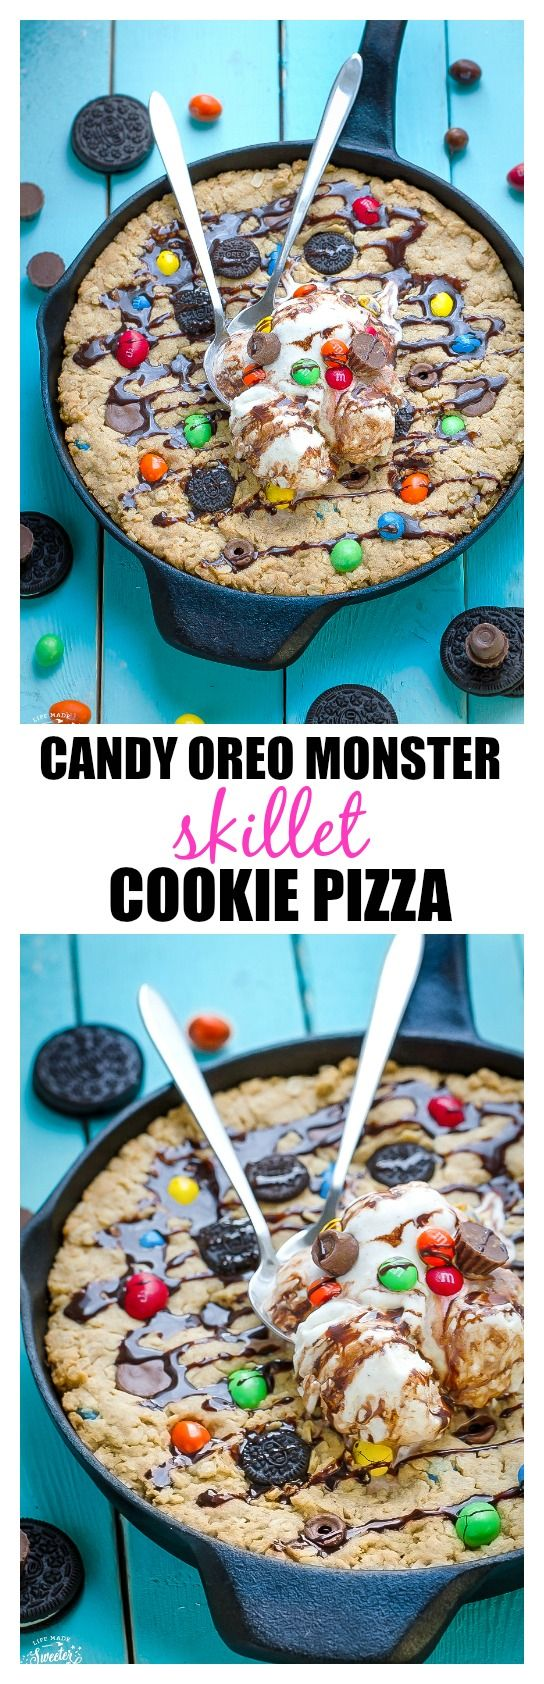 Candy Oreo Monster Skillet Cookie Pizza is the perfect way to use up leftover Halloween candy